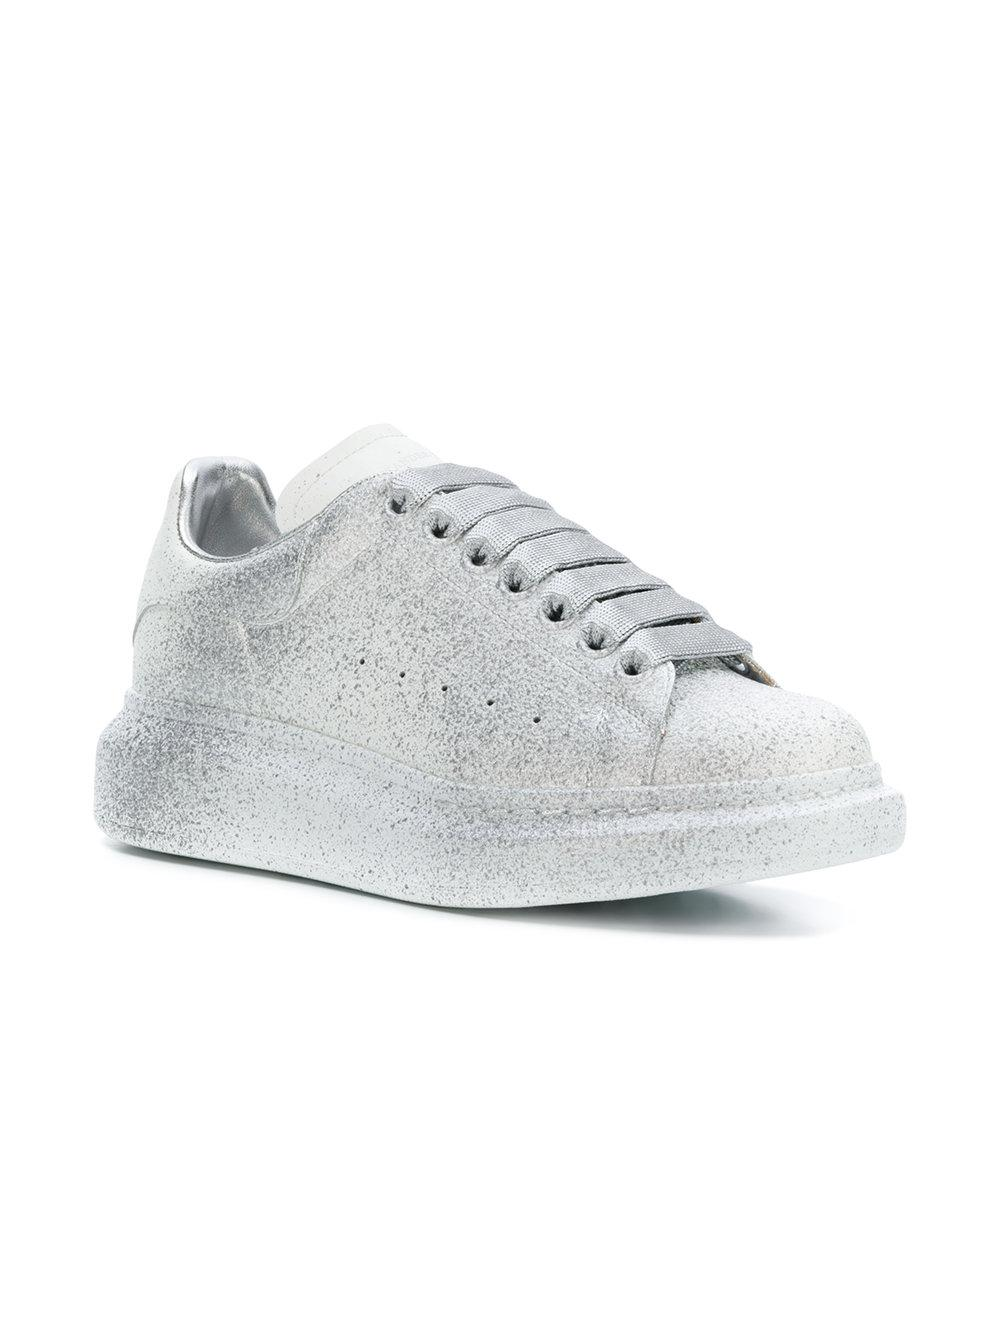 47cf155af215 Lyst - Alexander McQueen Glitter Lace-up Sneakers in Gray